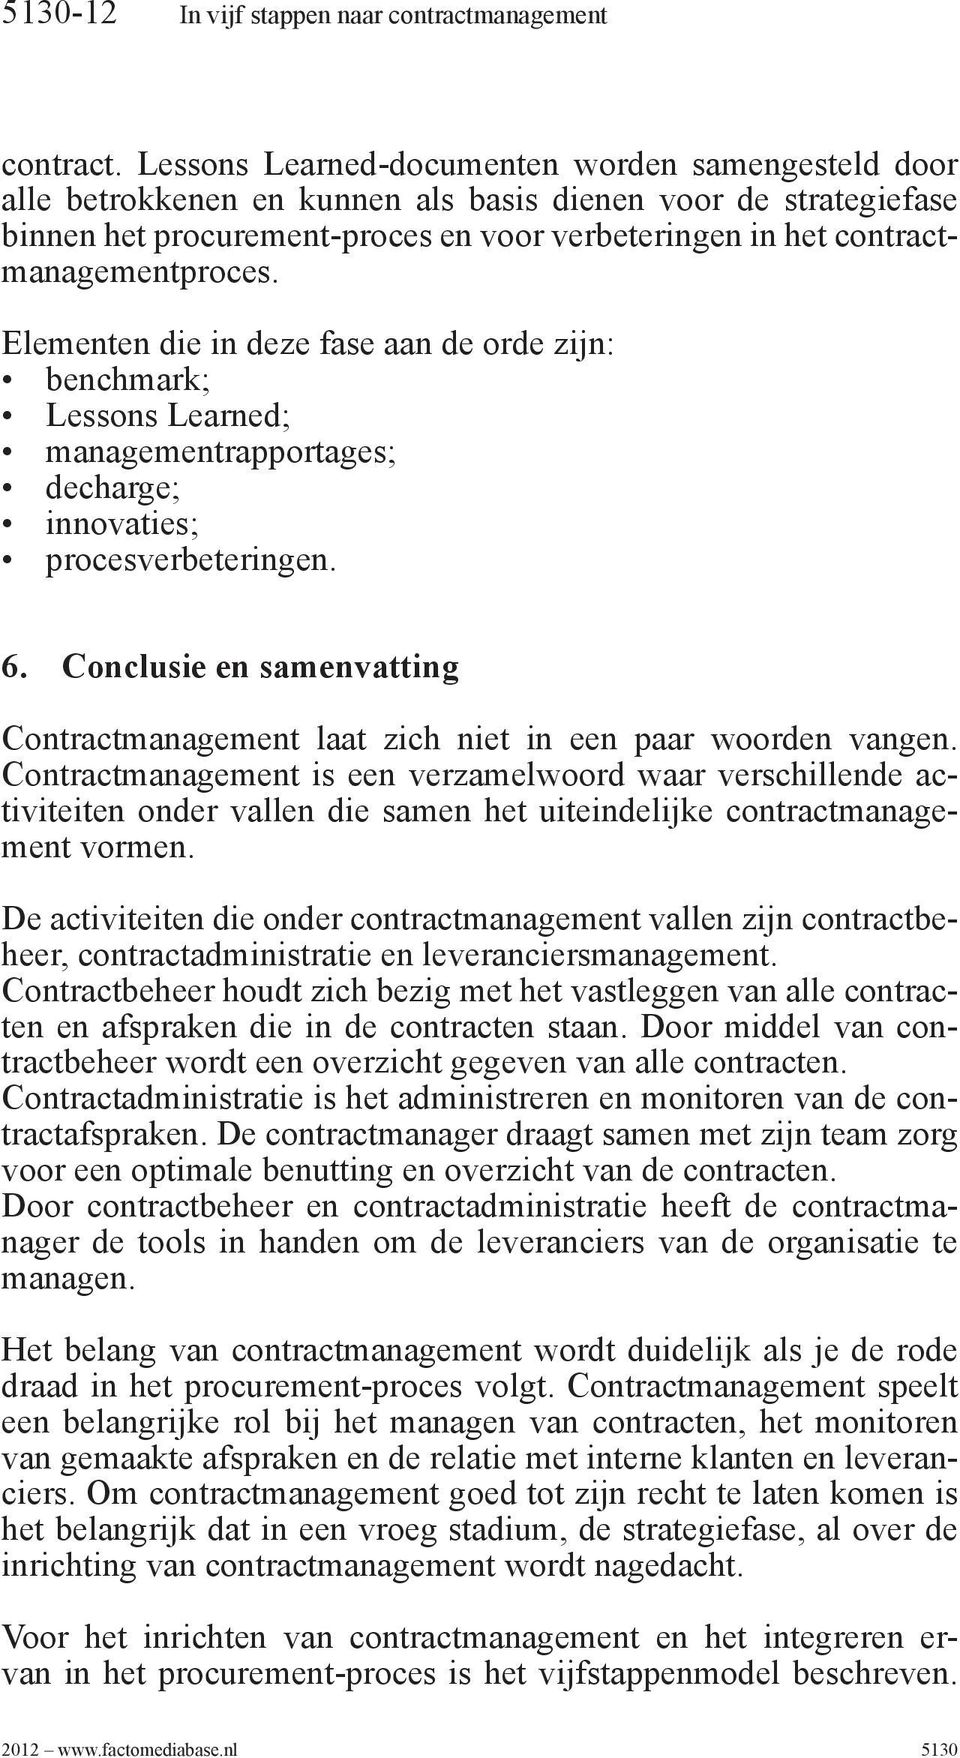 contractmanagementproces. Elementen die in deze fase aan de orde zijn: benchmark; Lessons Learned; managementrapportages; decharge; innovaties; procesverbeteringen. 6.